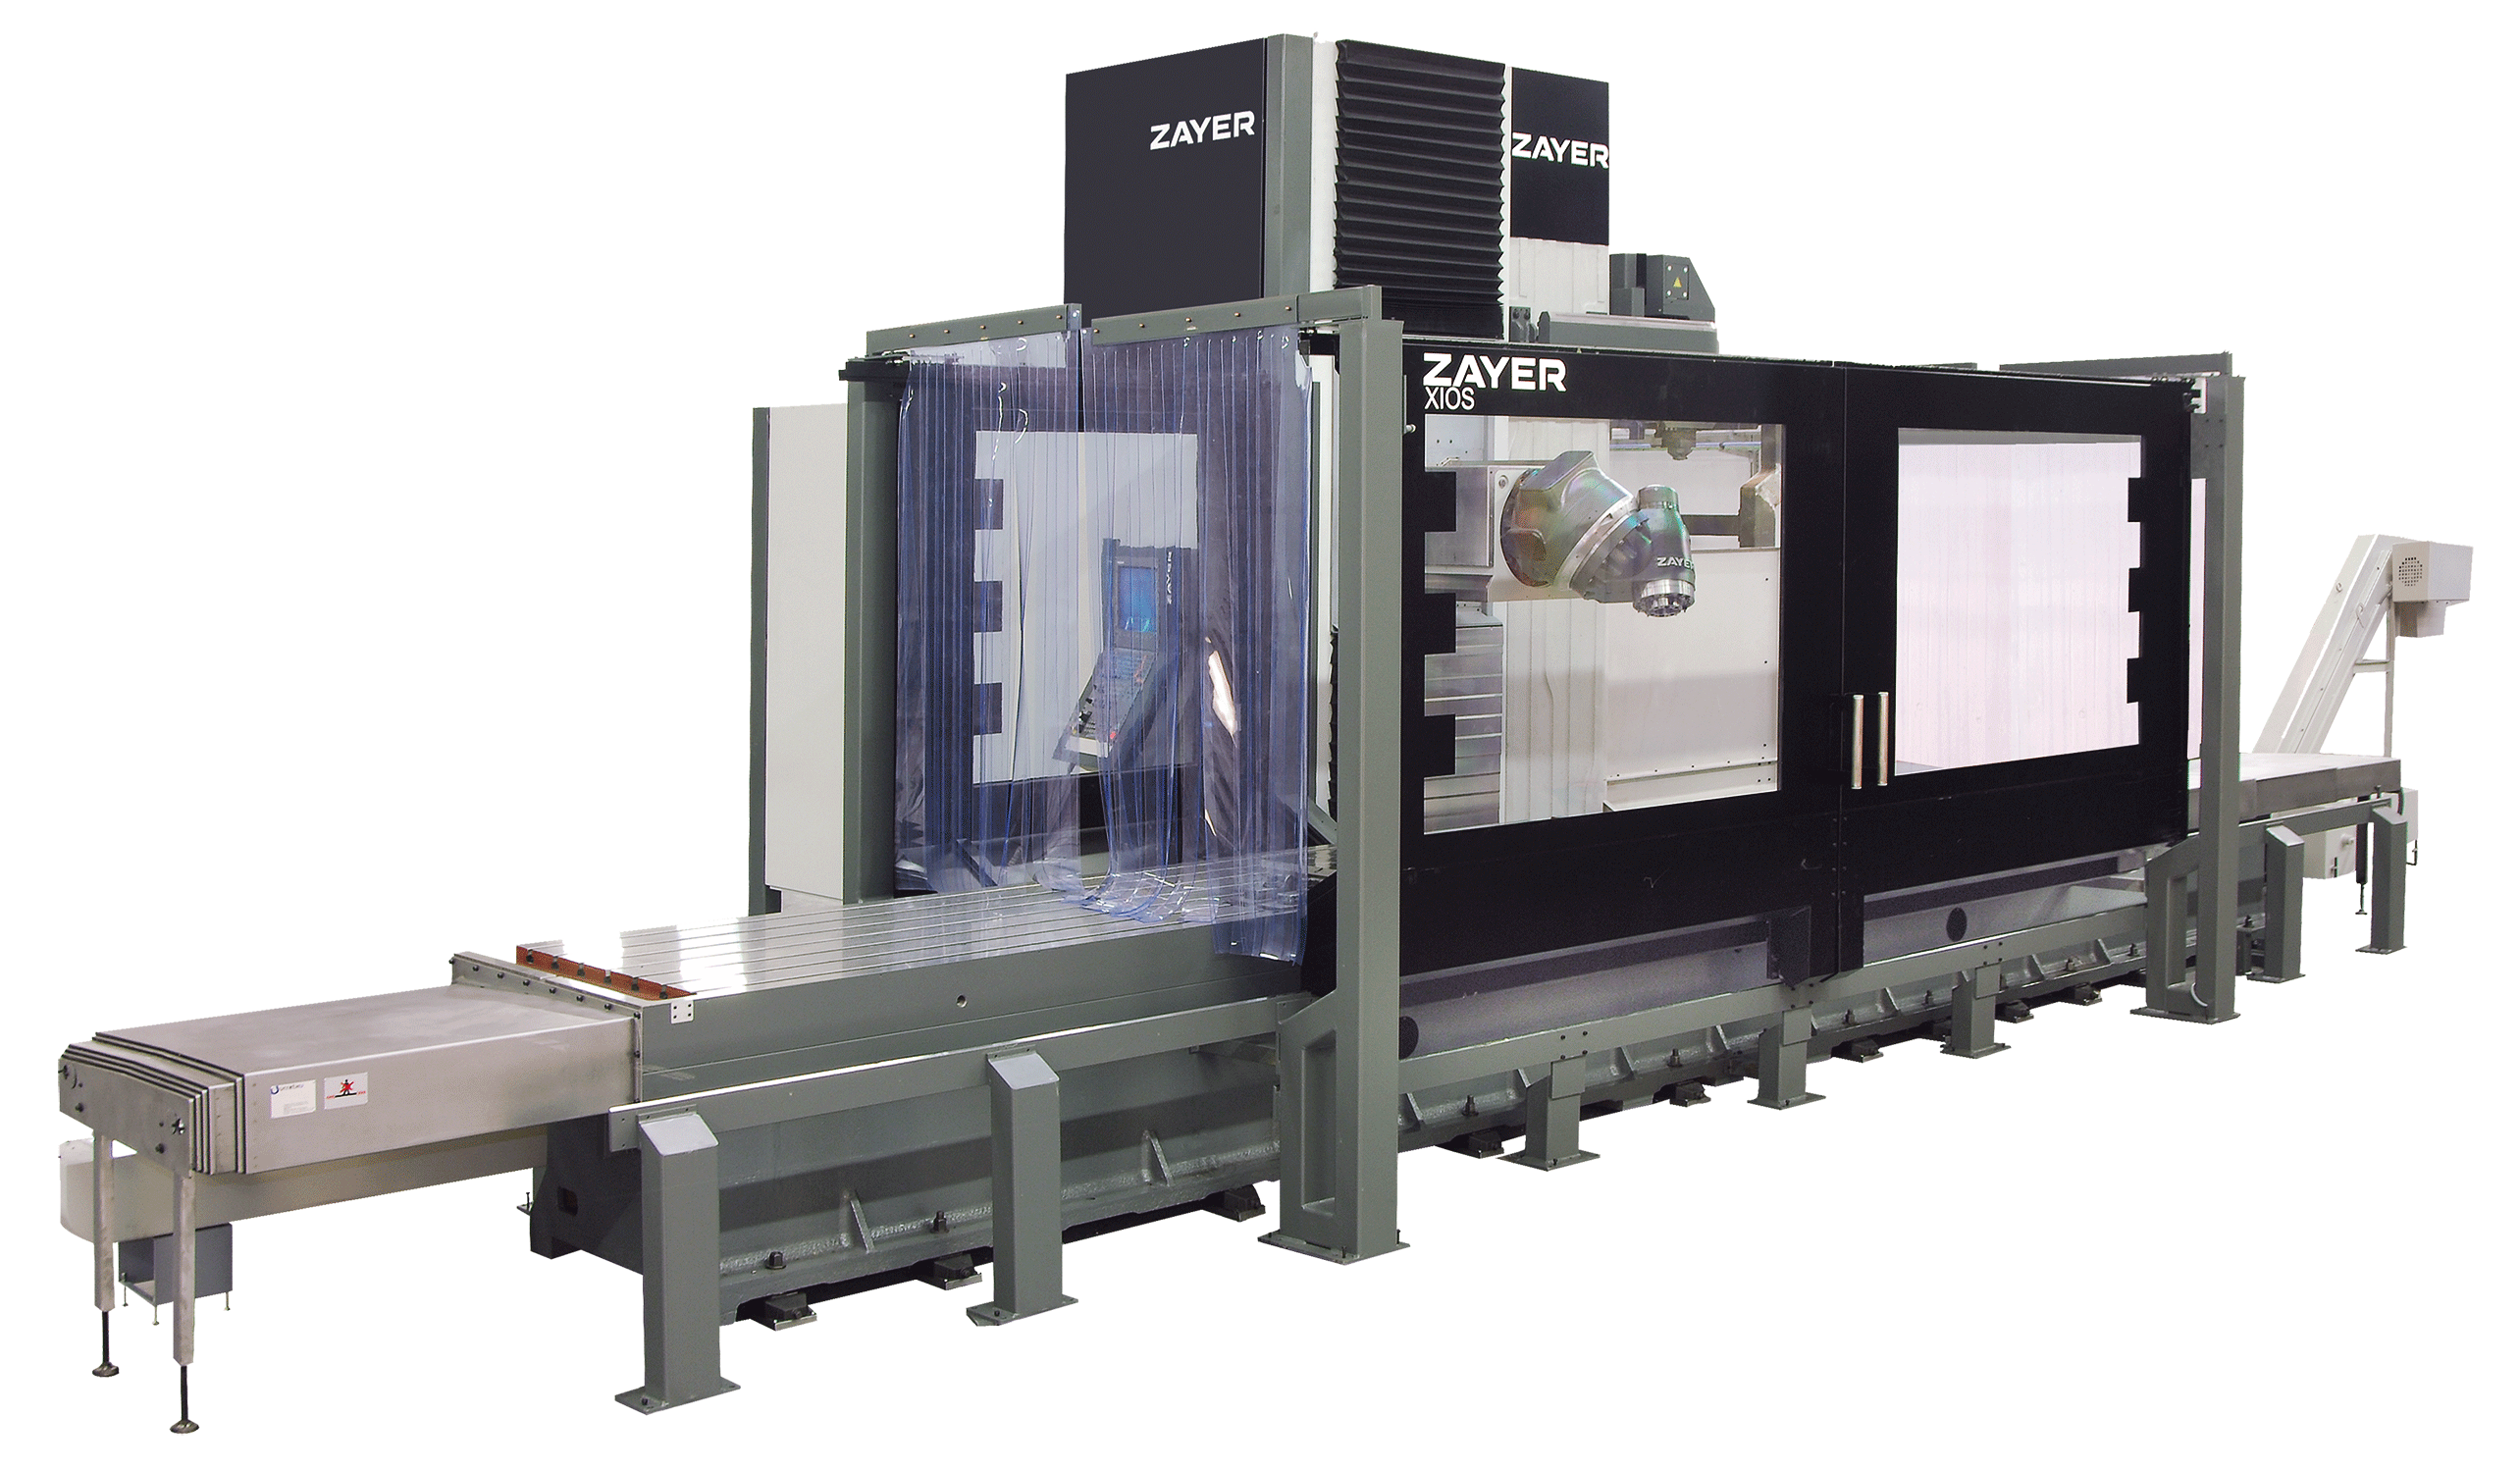 Zayer Xios Bed Mill Machine photo